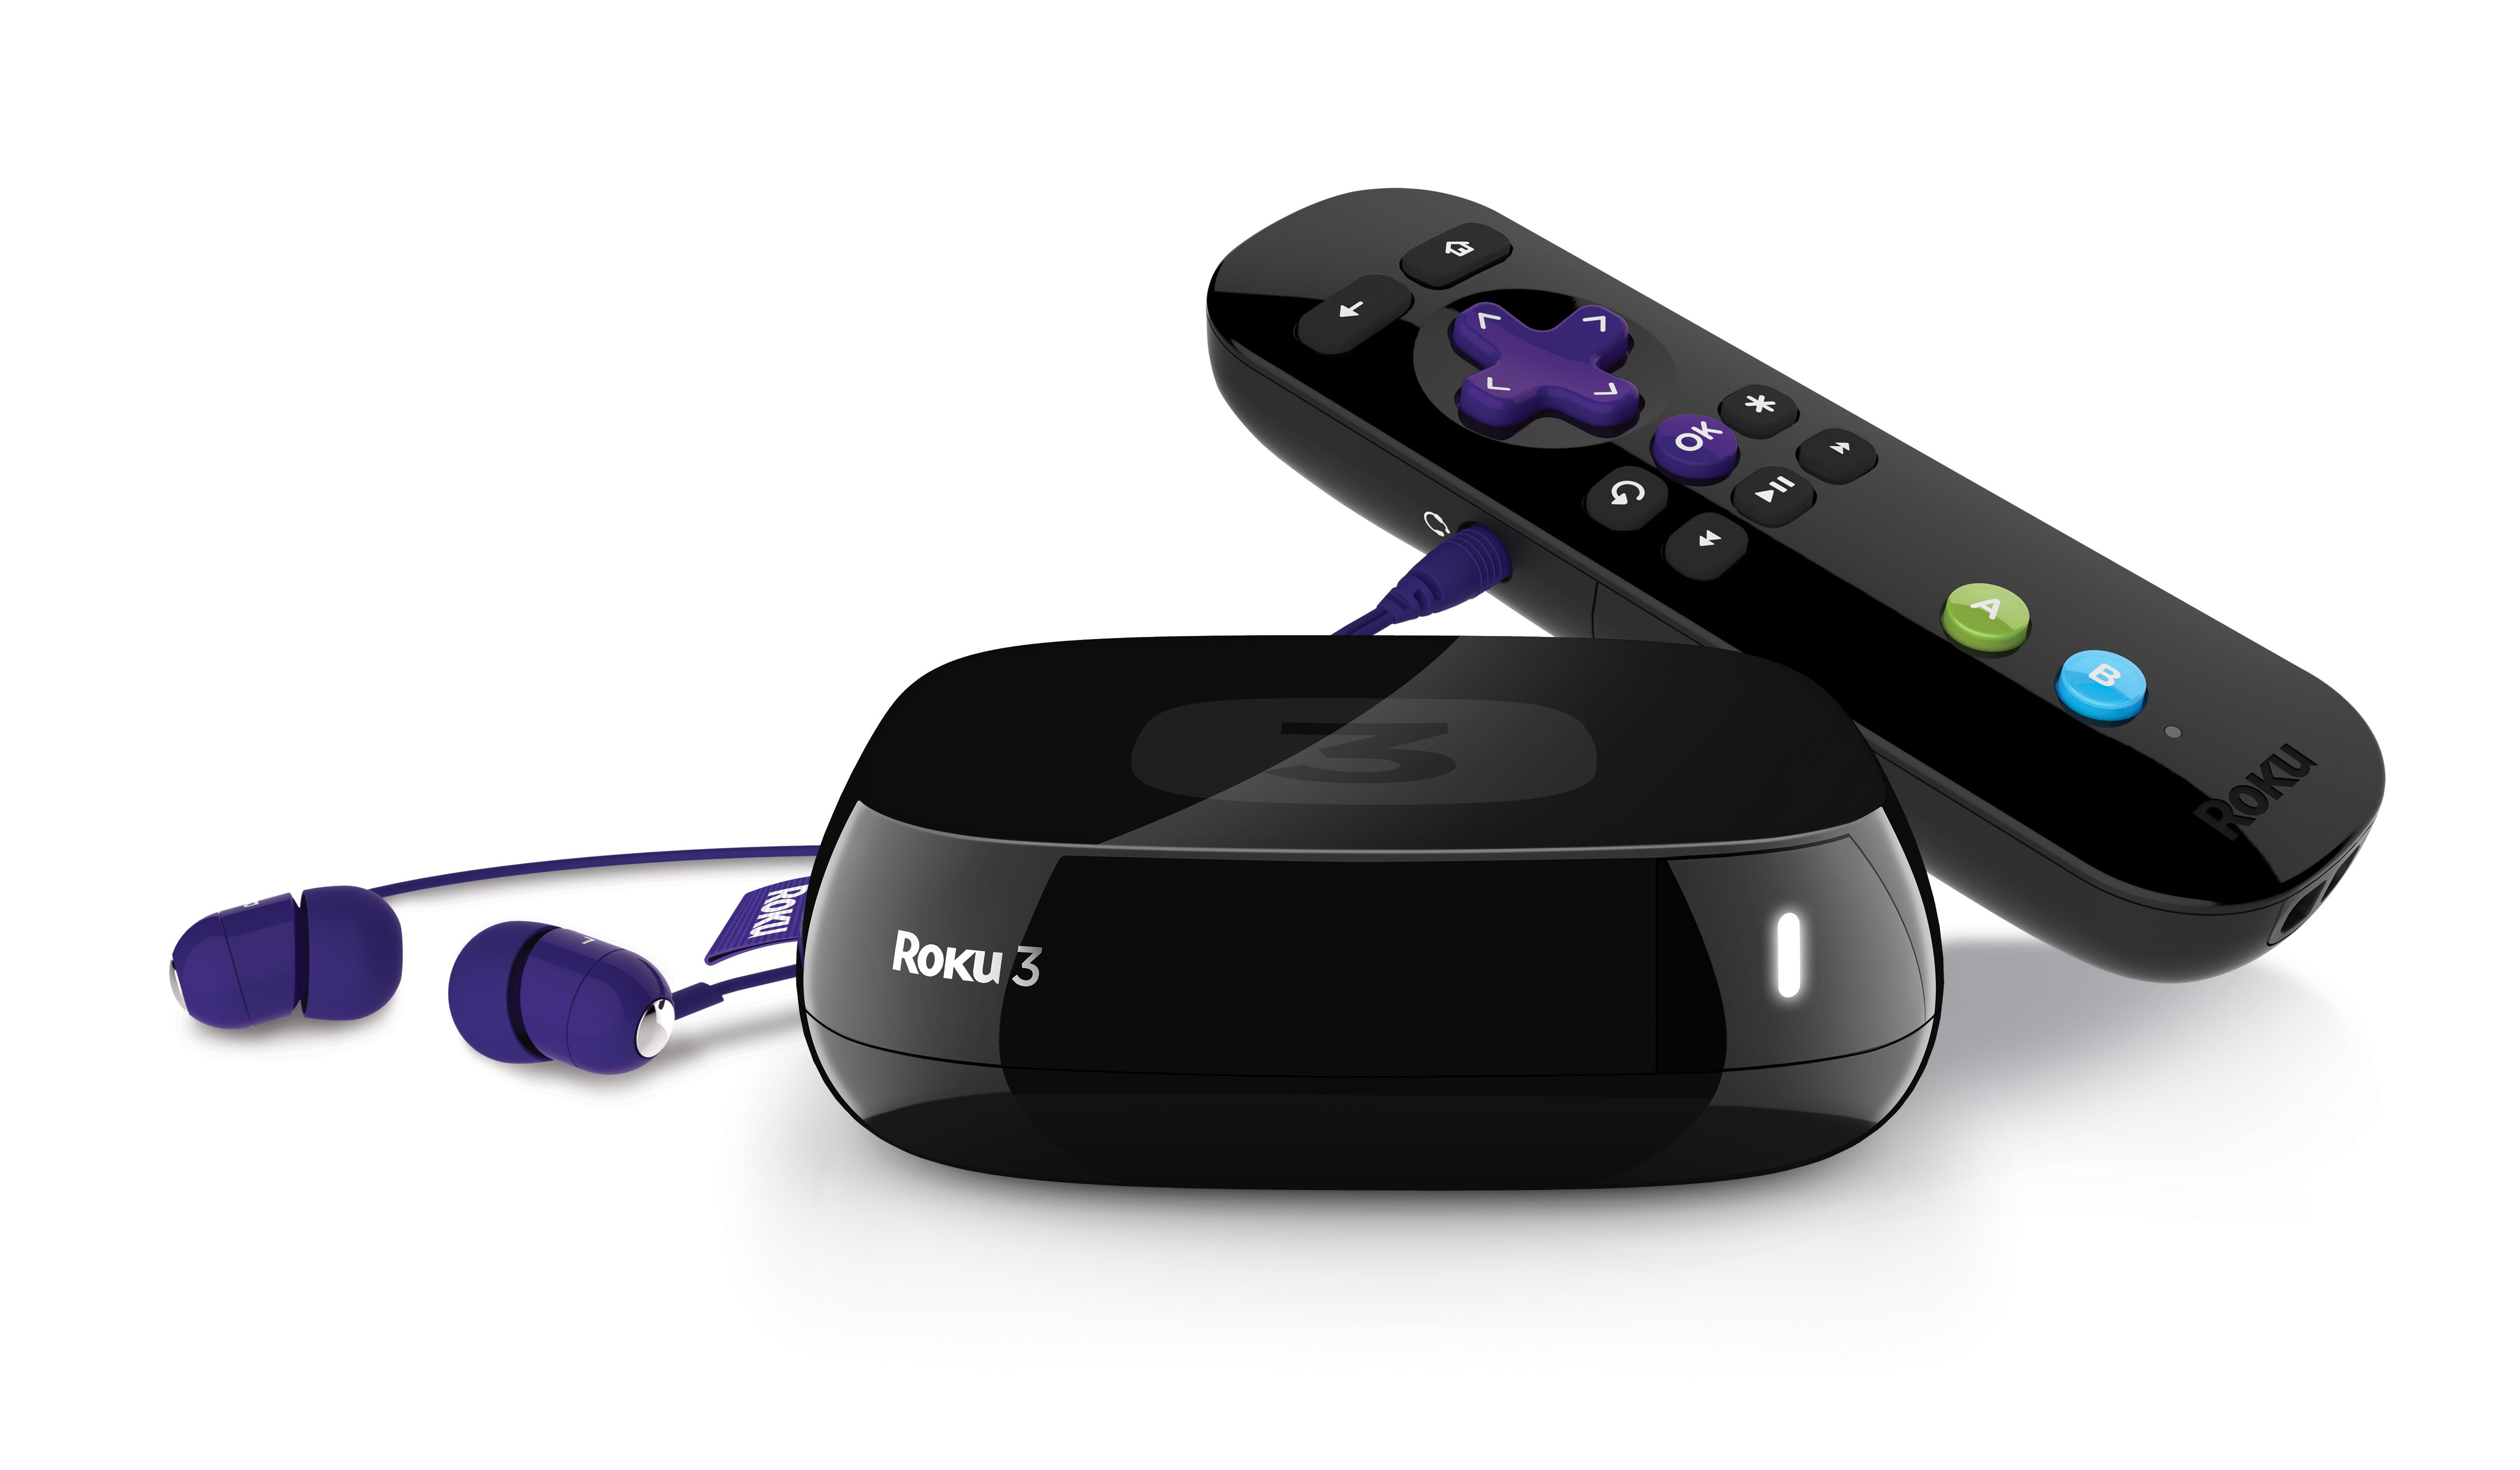 twc-wants-to-replace-cable-box-with-roku